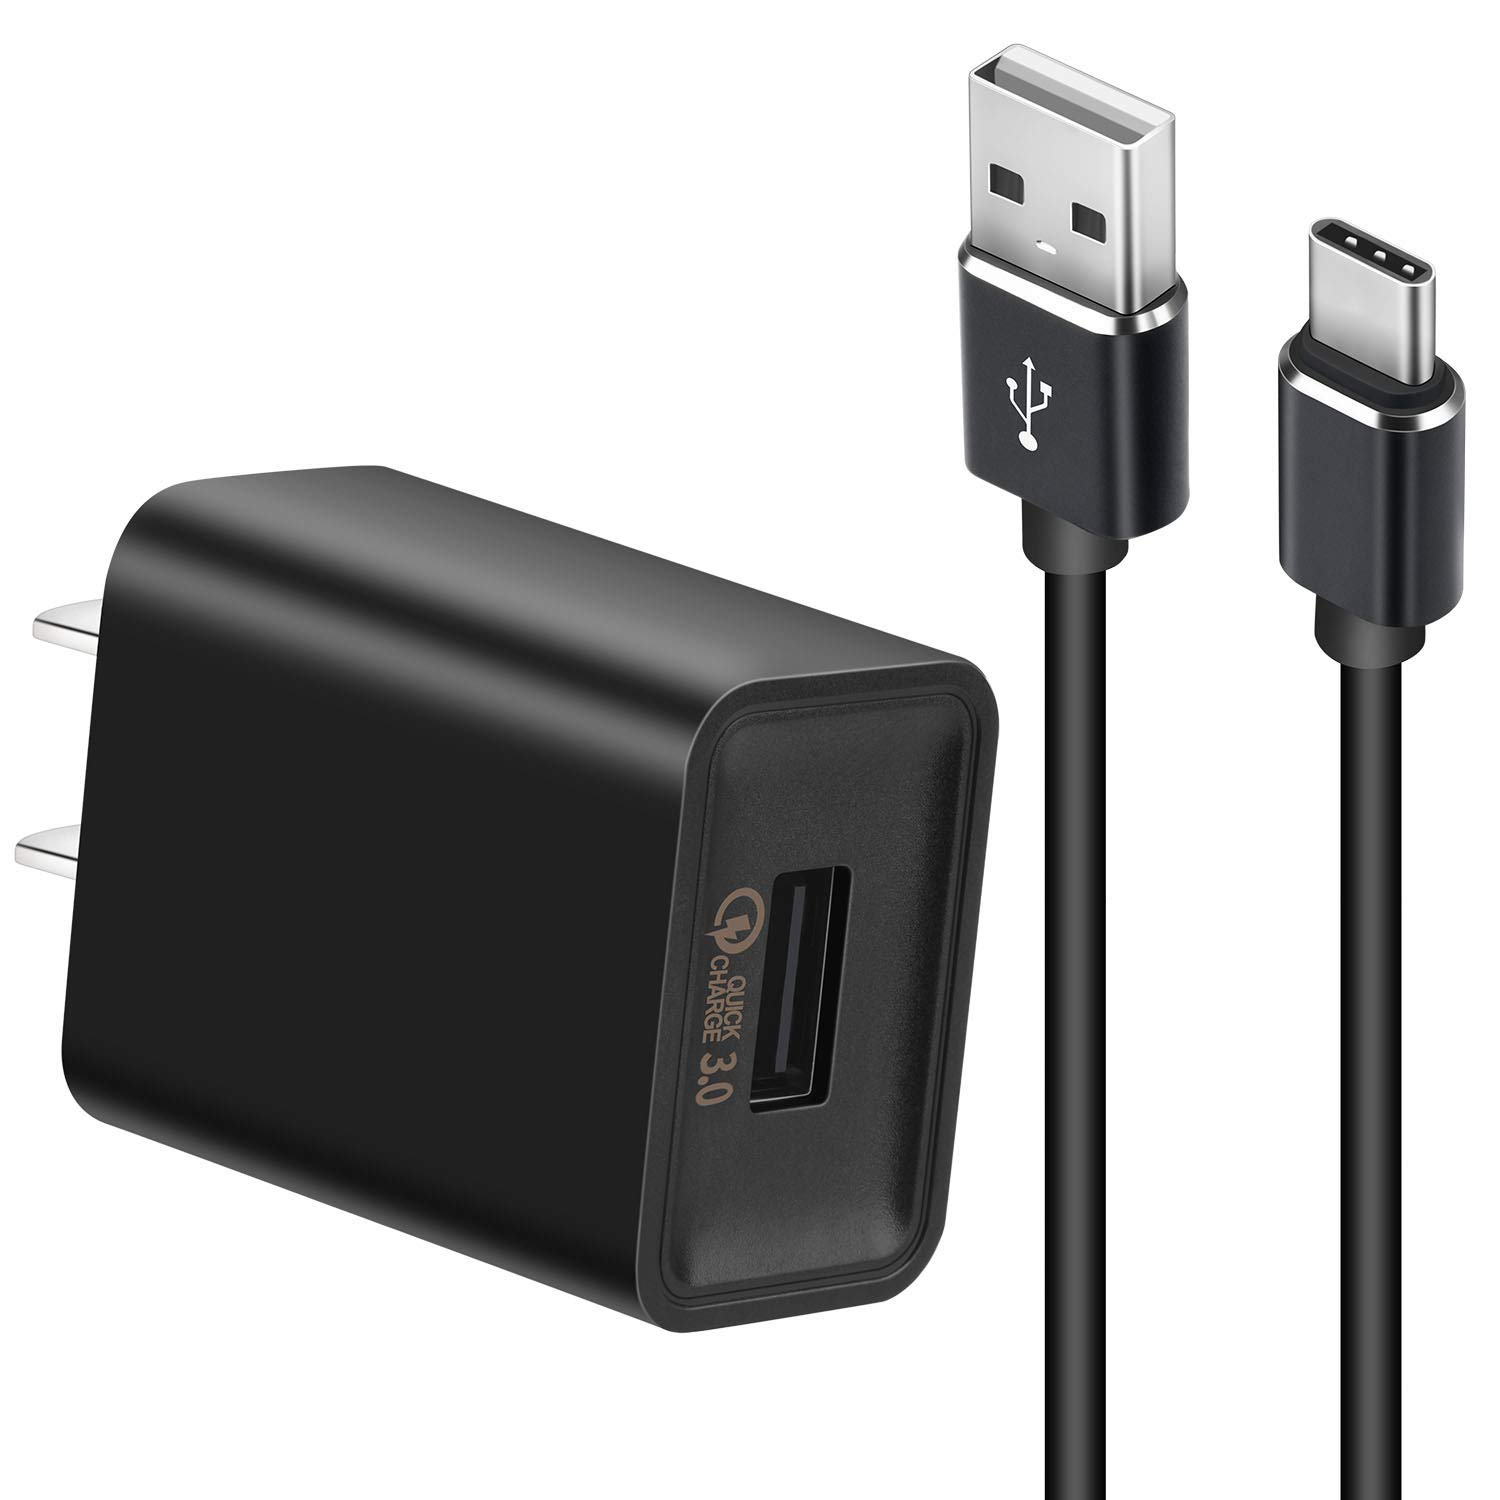 Quick Charger 3.0 USB Wall Charger +3.3ft USB C Cable 18W QC 3.0 Charger Quick Adapter Fast Charger for Samsung Galaxy S8 S8 Plus Note 8 S9 S9 Plus, Huawei P20/P20 Pro, LG G6 G5 V30 V20 (Black)